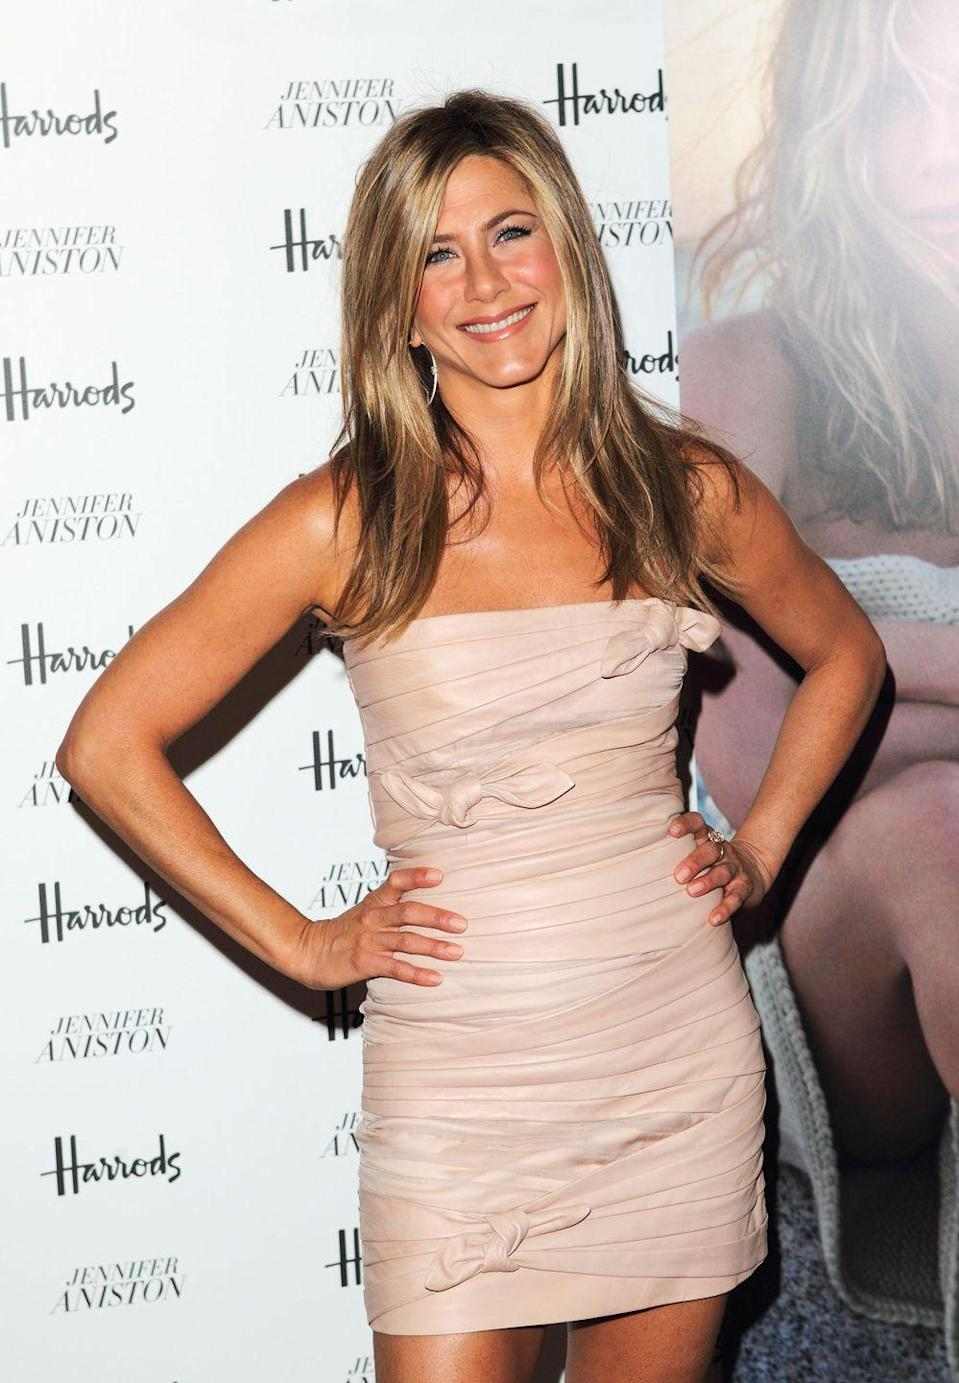 """<p>'It's the longest workout I've actually stayed with consistently other than yoga,' Jen told <a href=""""https://www.instyle.com/news/jennifer-aniston-september-cover"""" rel=""""nofollow noopener"""" target=""""_blank"""" data-ylk=""""slk:InStyle"""" class=""""link rapid-noclick-resp"""">InStyle</a>. 'There's something about the mental aspect of boxing—the drills, your brain has to work, you're not just sitting on a bike. It's amazing.'</p>"""